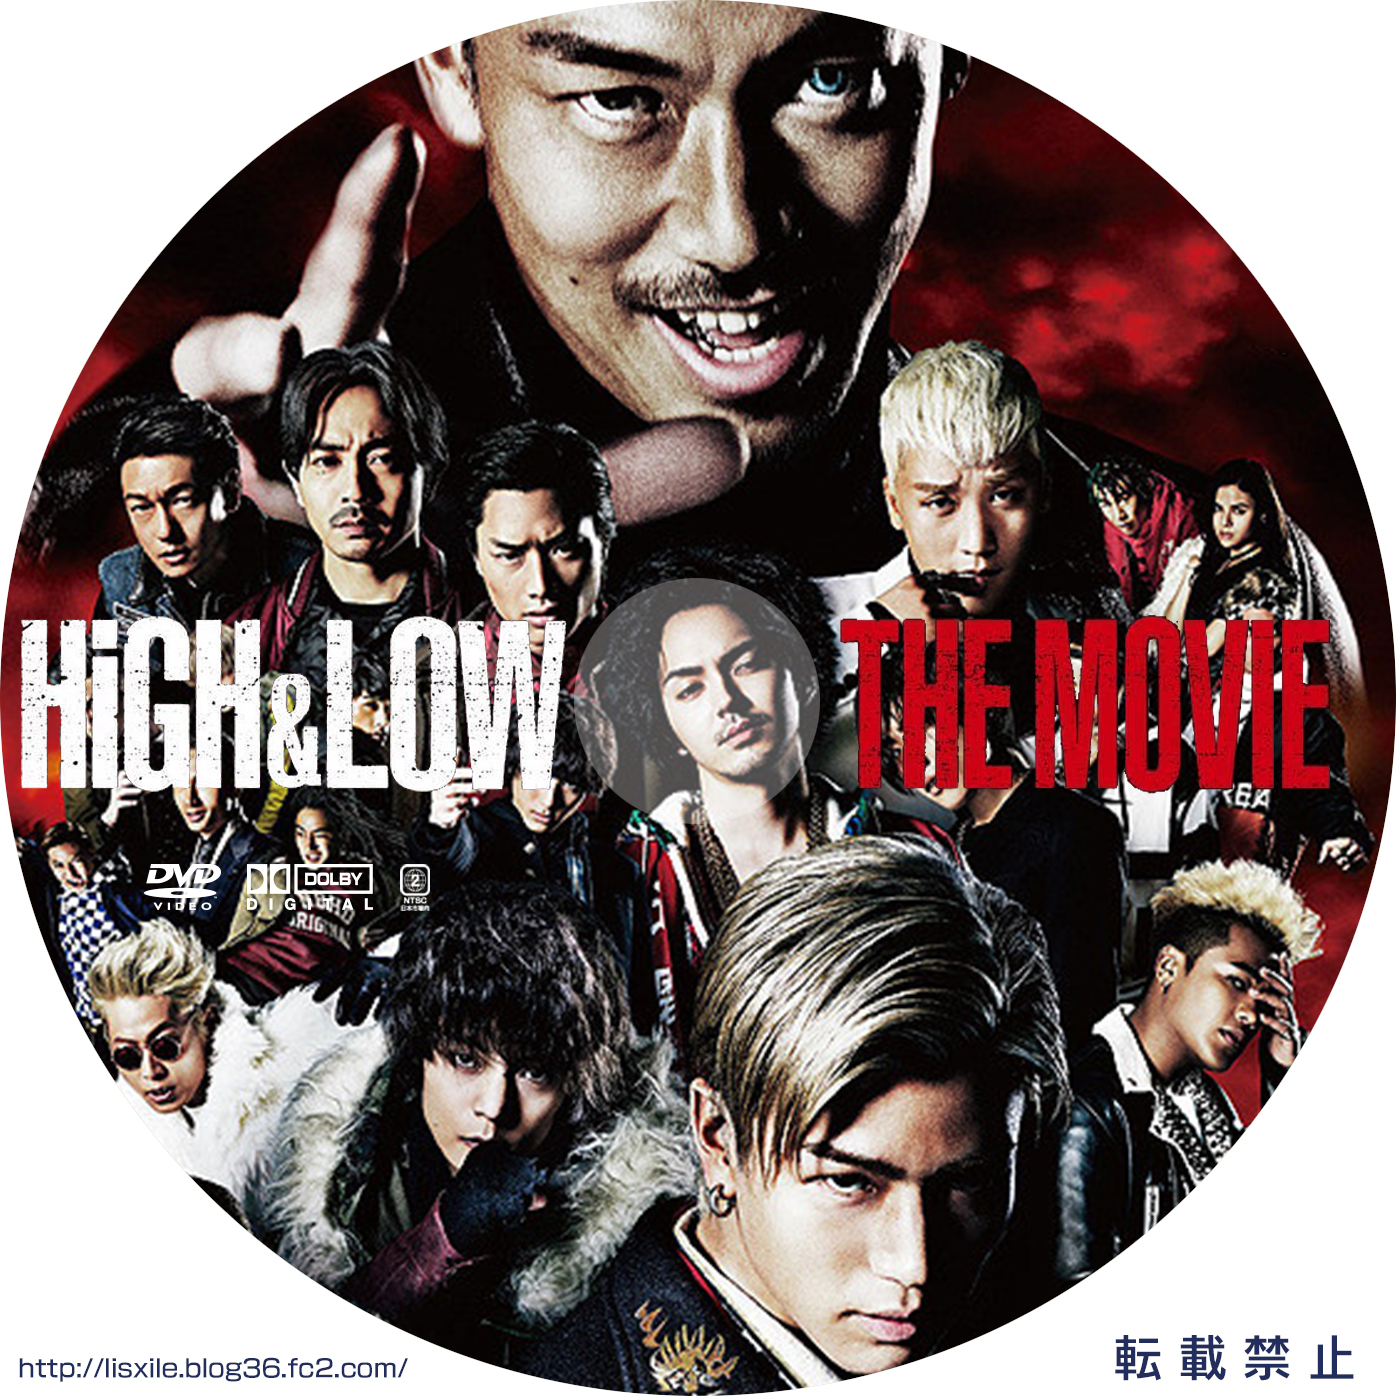 High and low movie 1 online / Gold coast fresh meats trading